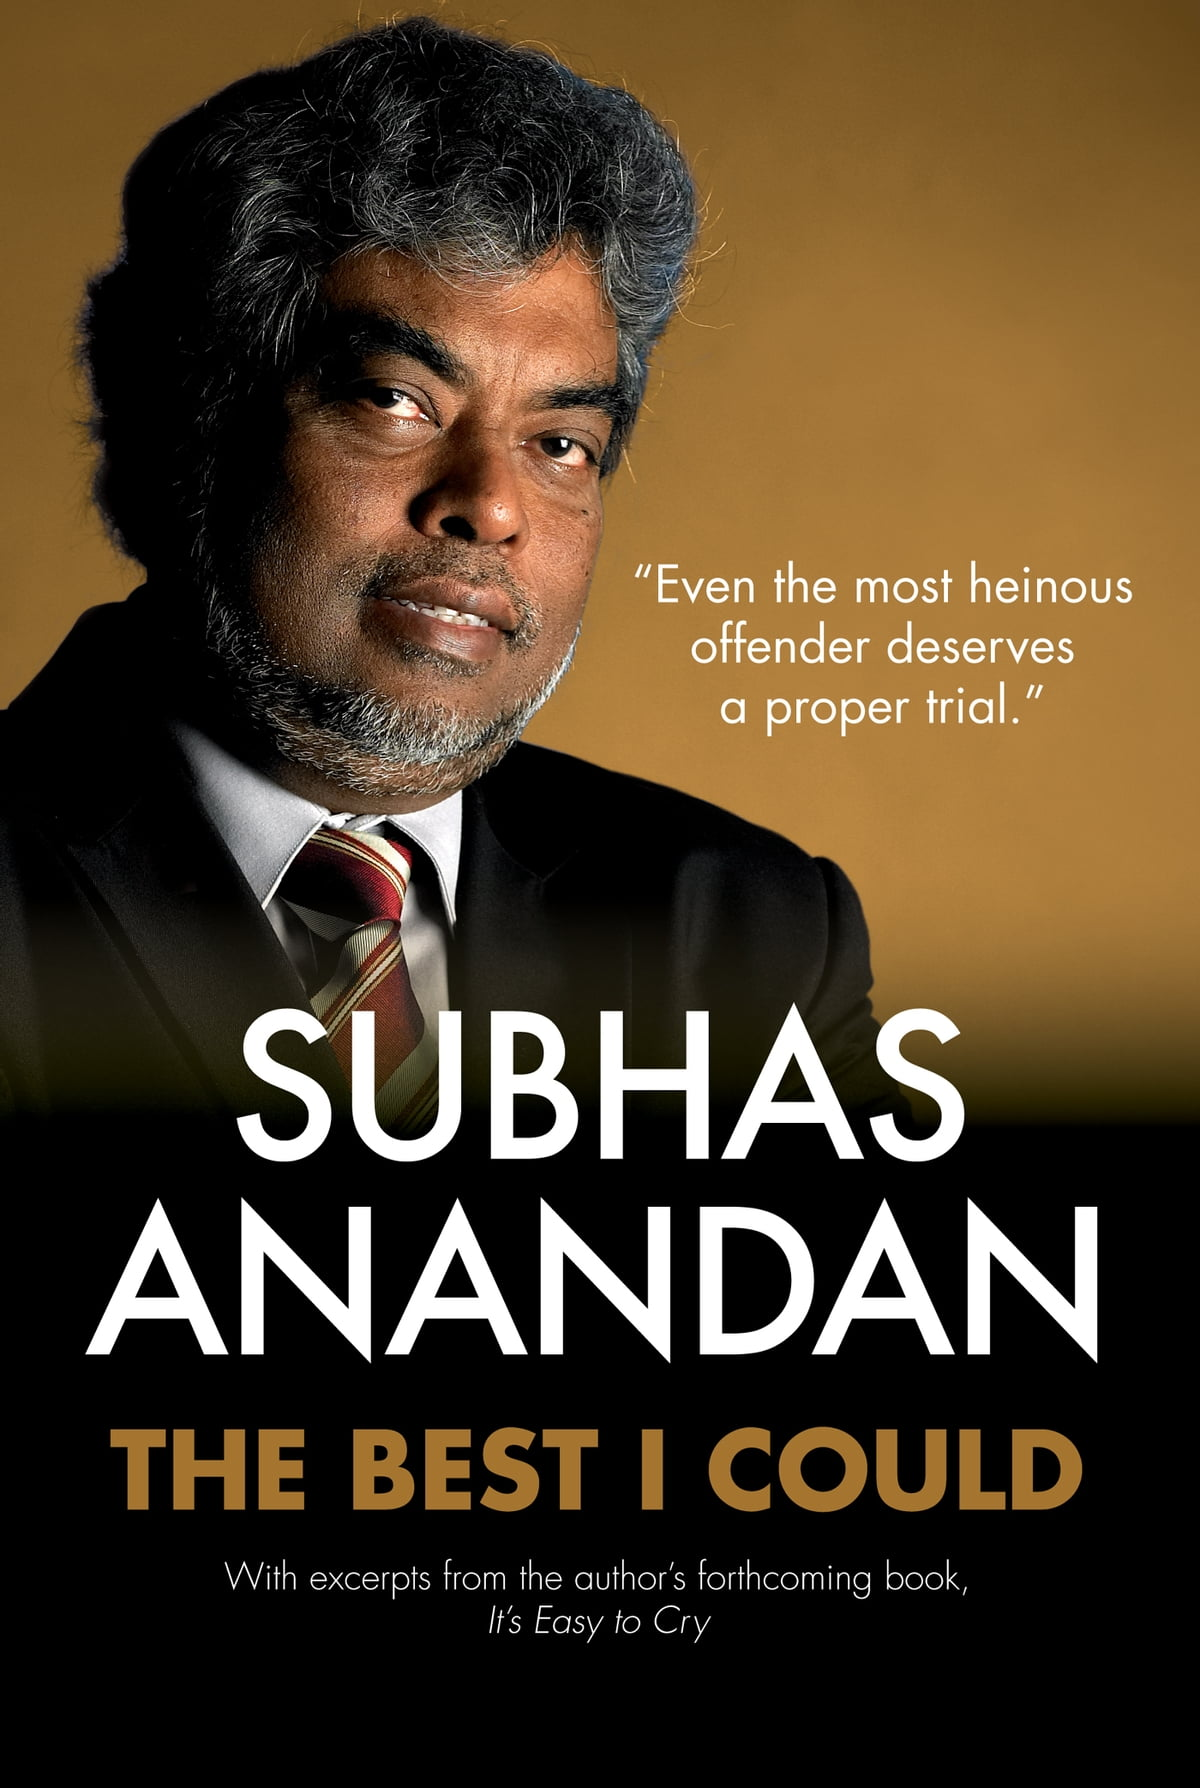 The Best I Could  New Cover Ebook By Subhas Anandan